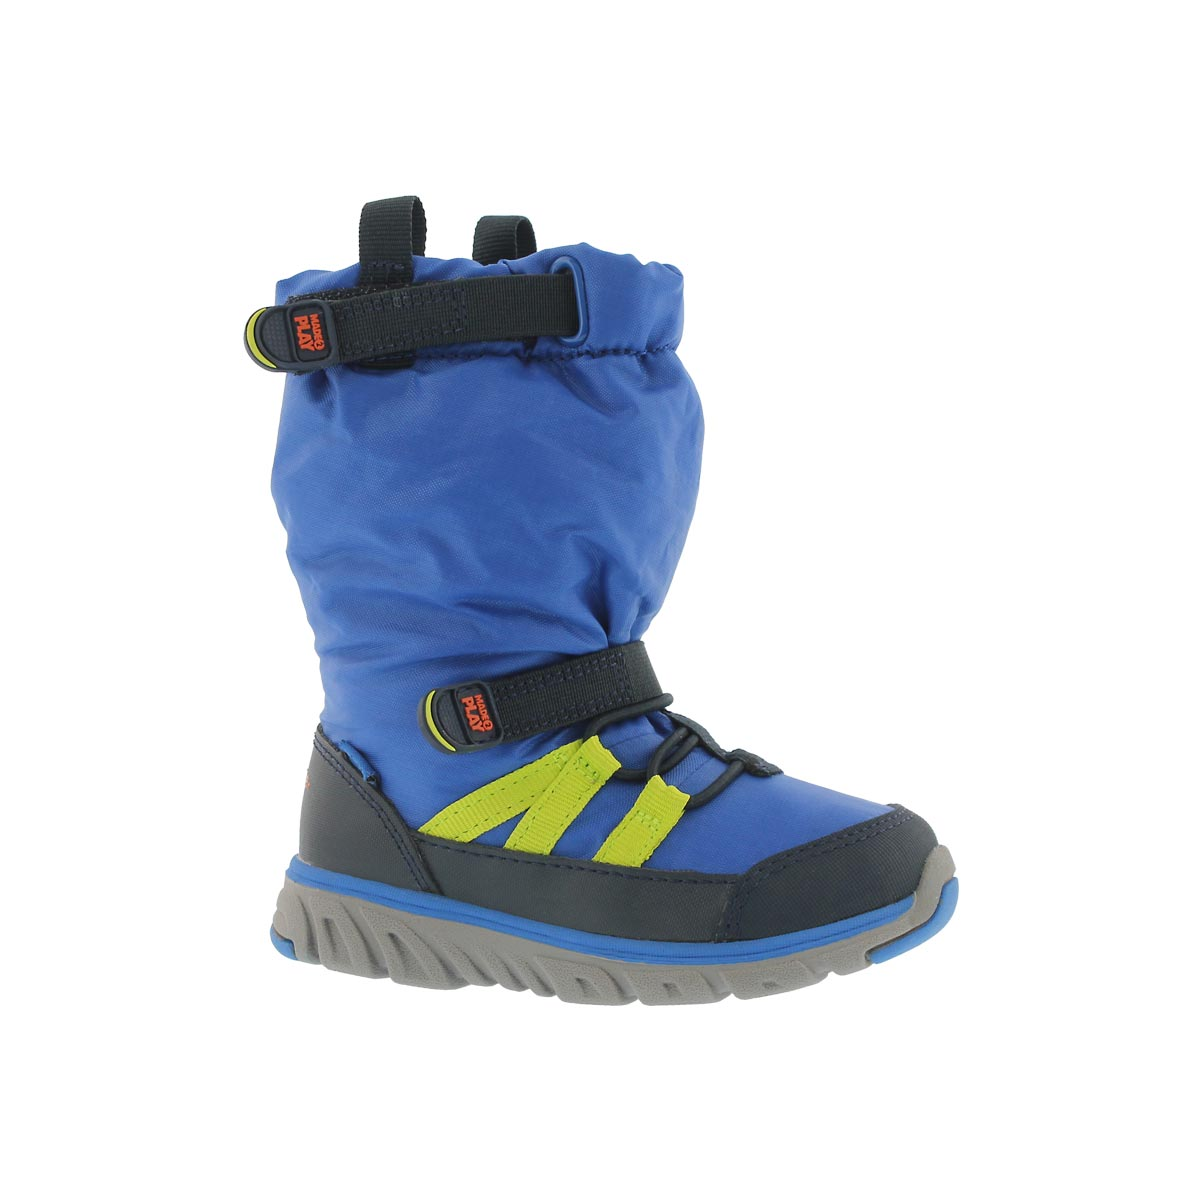 Inf M2P Sneaker Boot blue winter boot